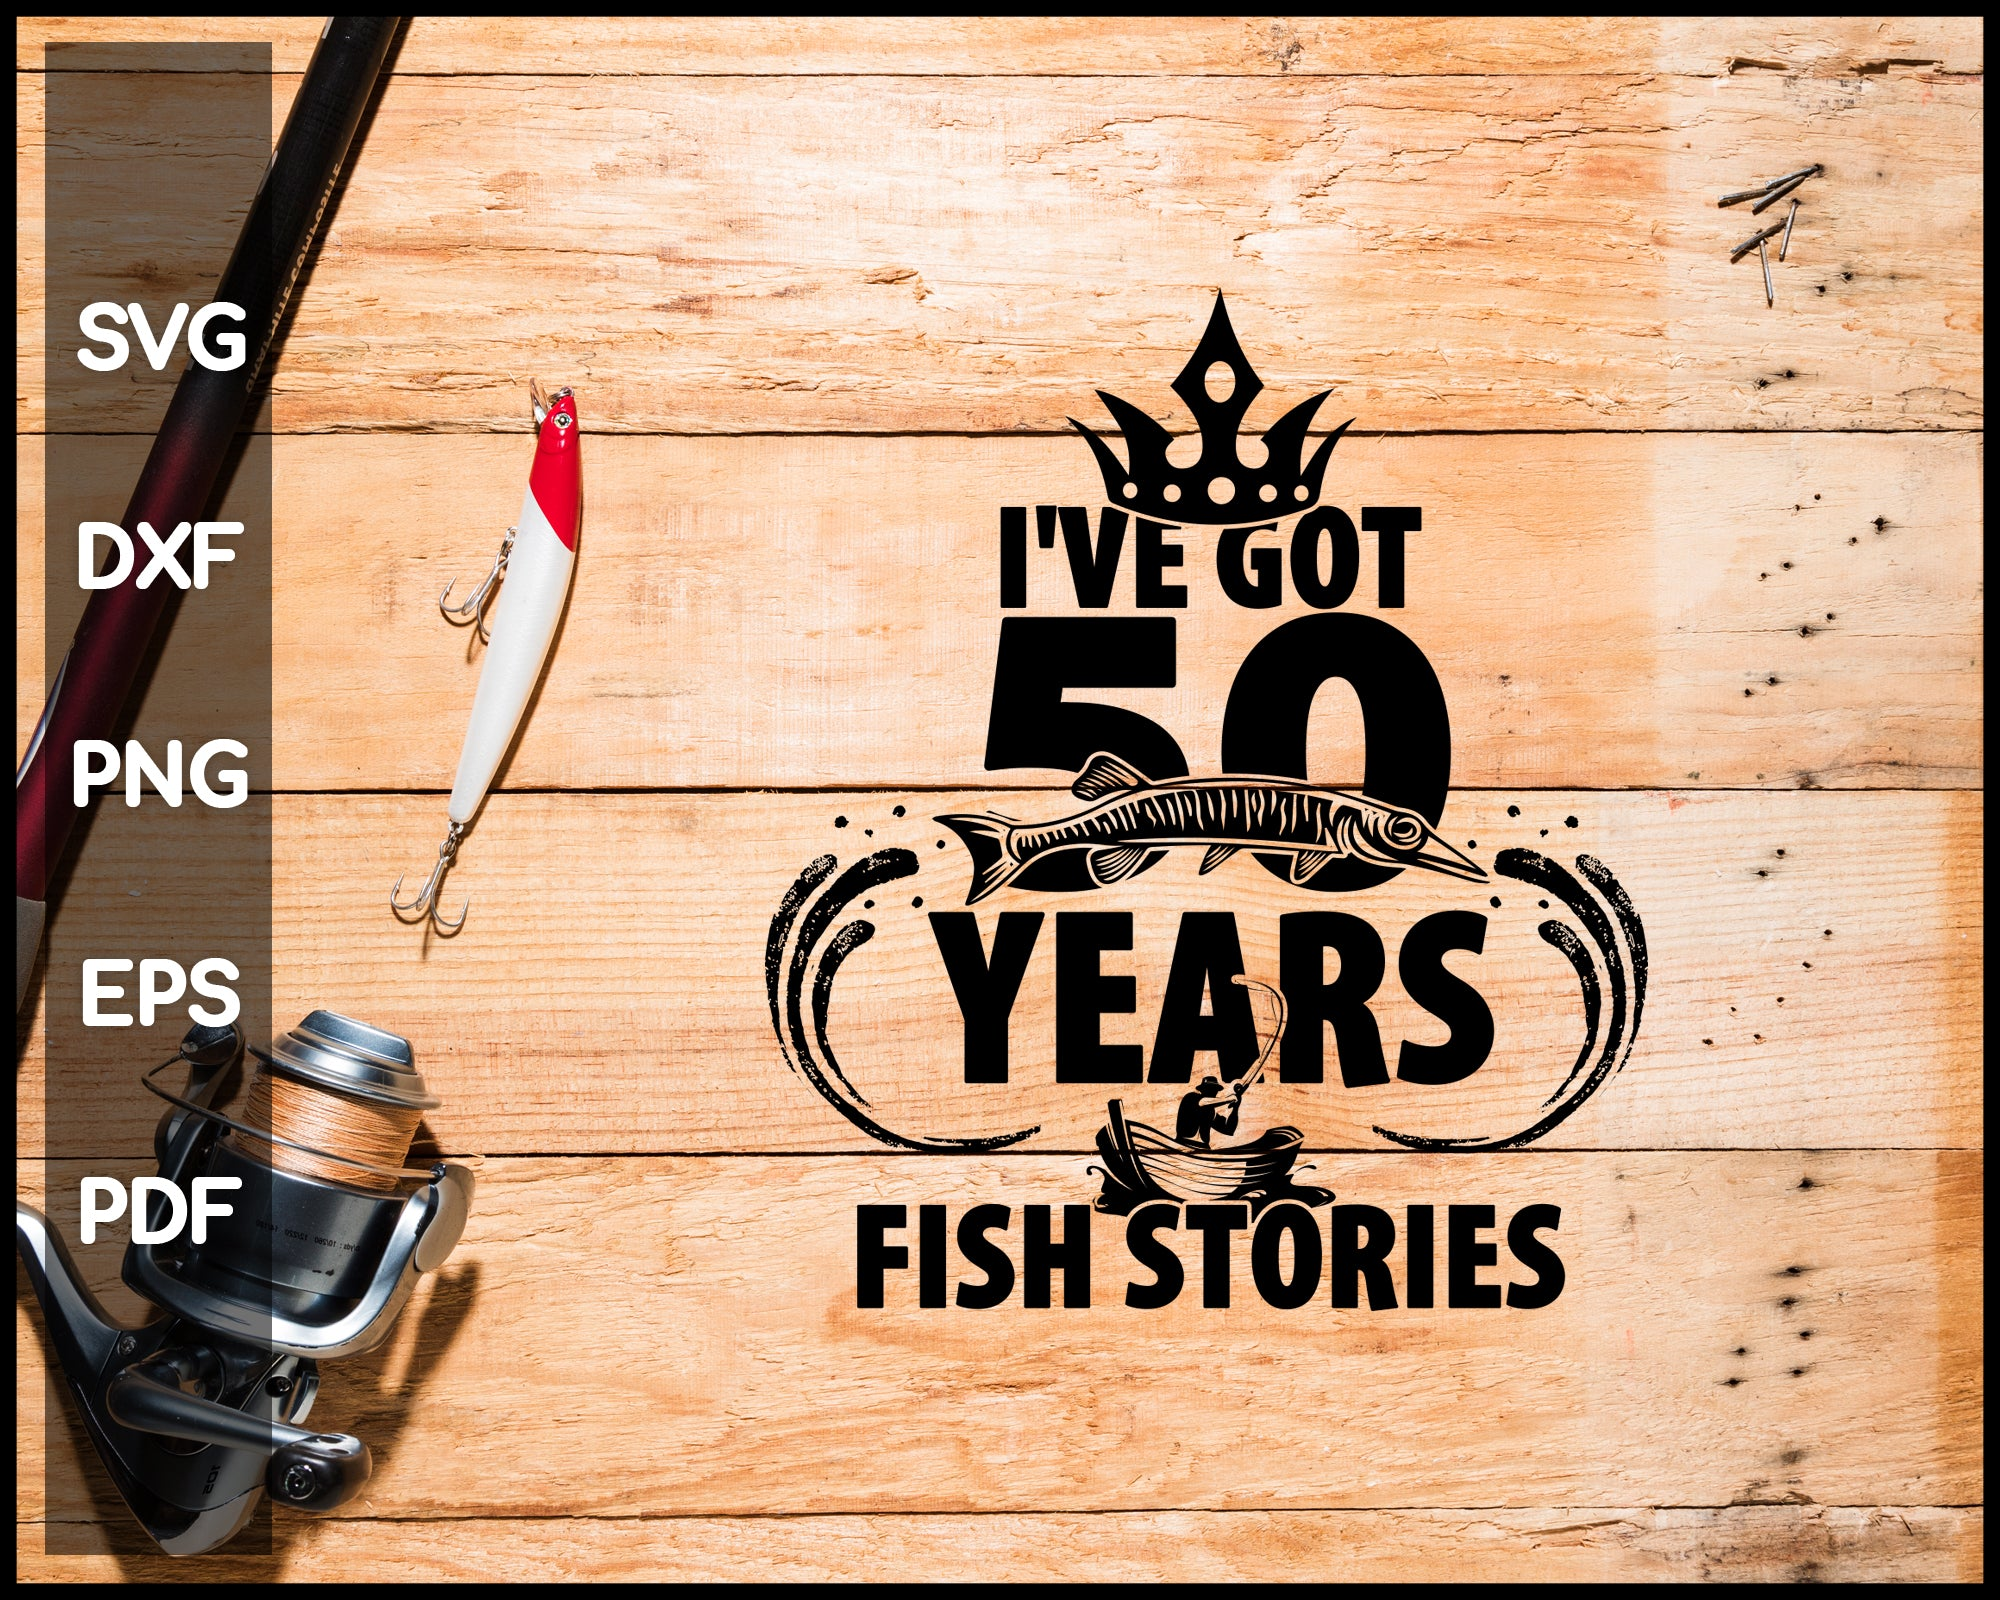 I Have Got 50 Years Worth of Fish Stories Fishing svg png Silhouette Designs For Cricut And Printable Files